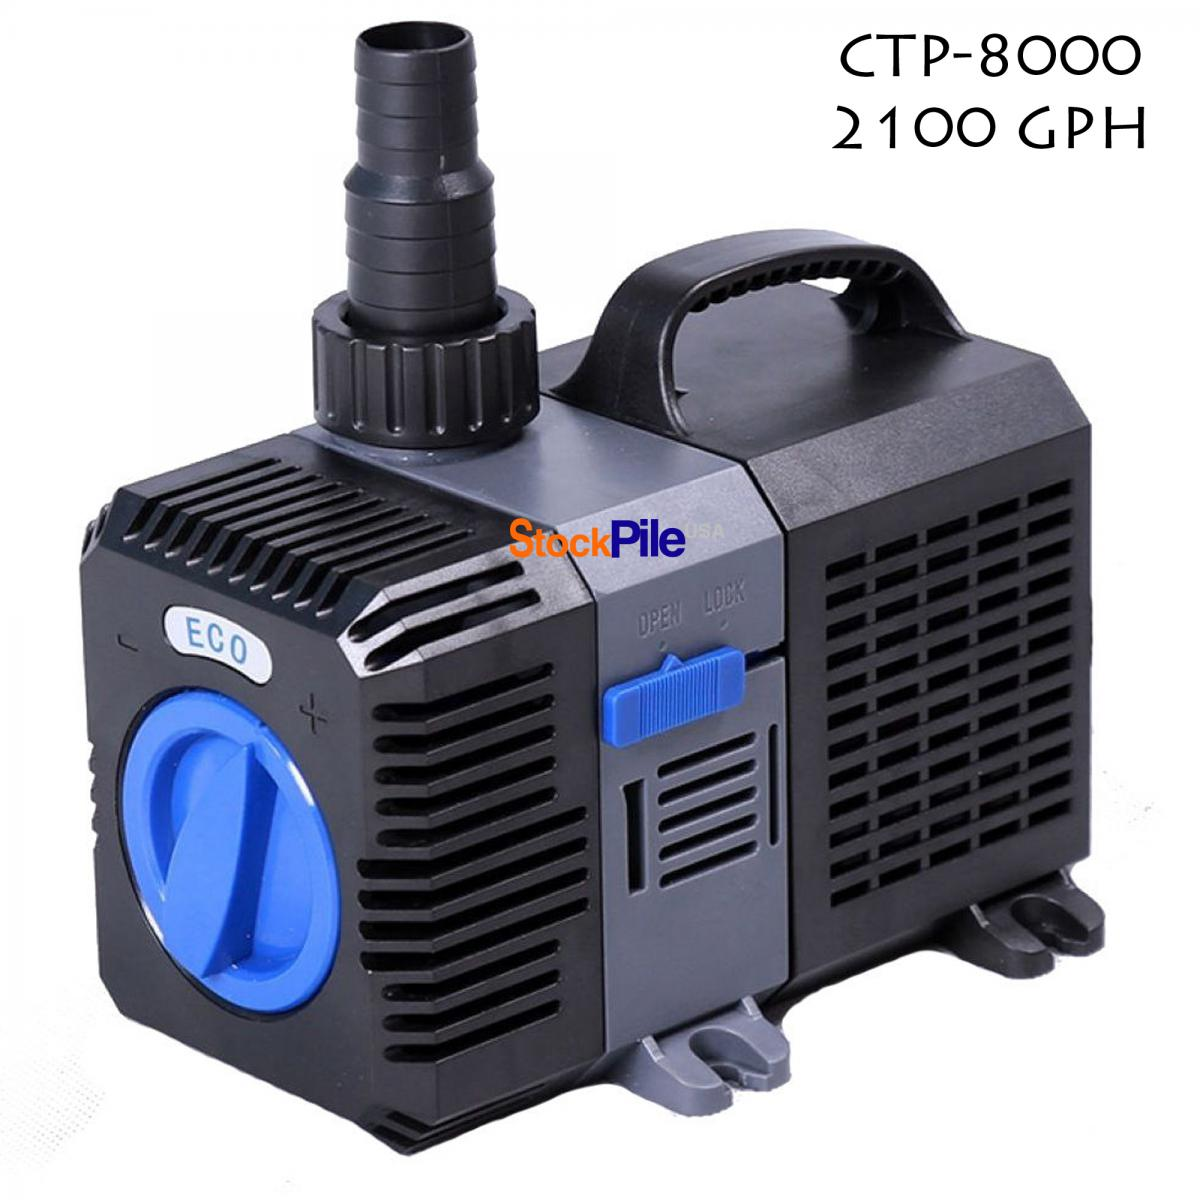 1200 4200 gph submersible pond pump inline fountain for Submersible pond pump and filter